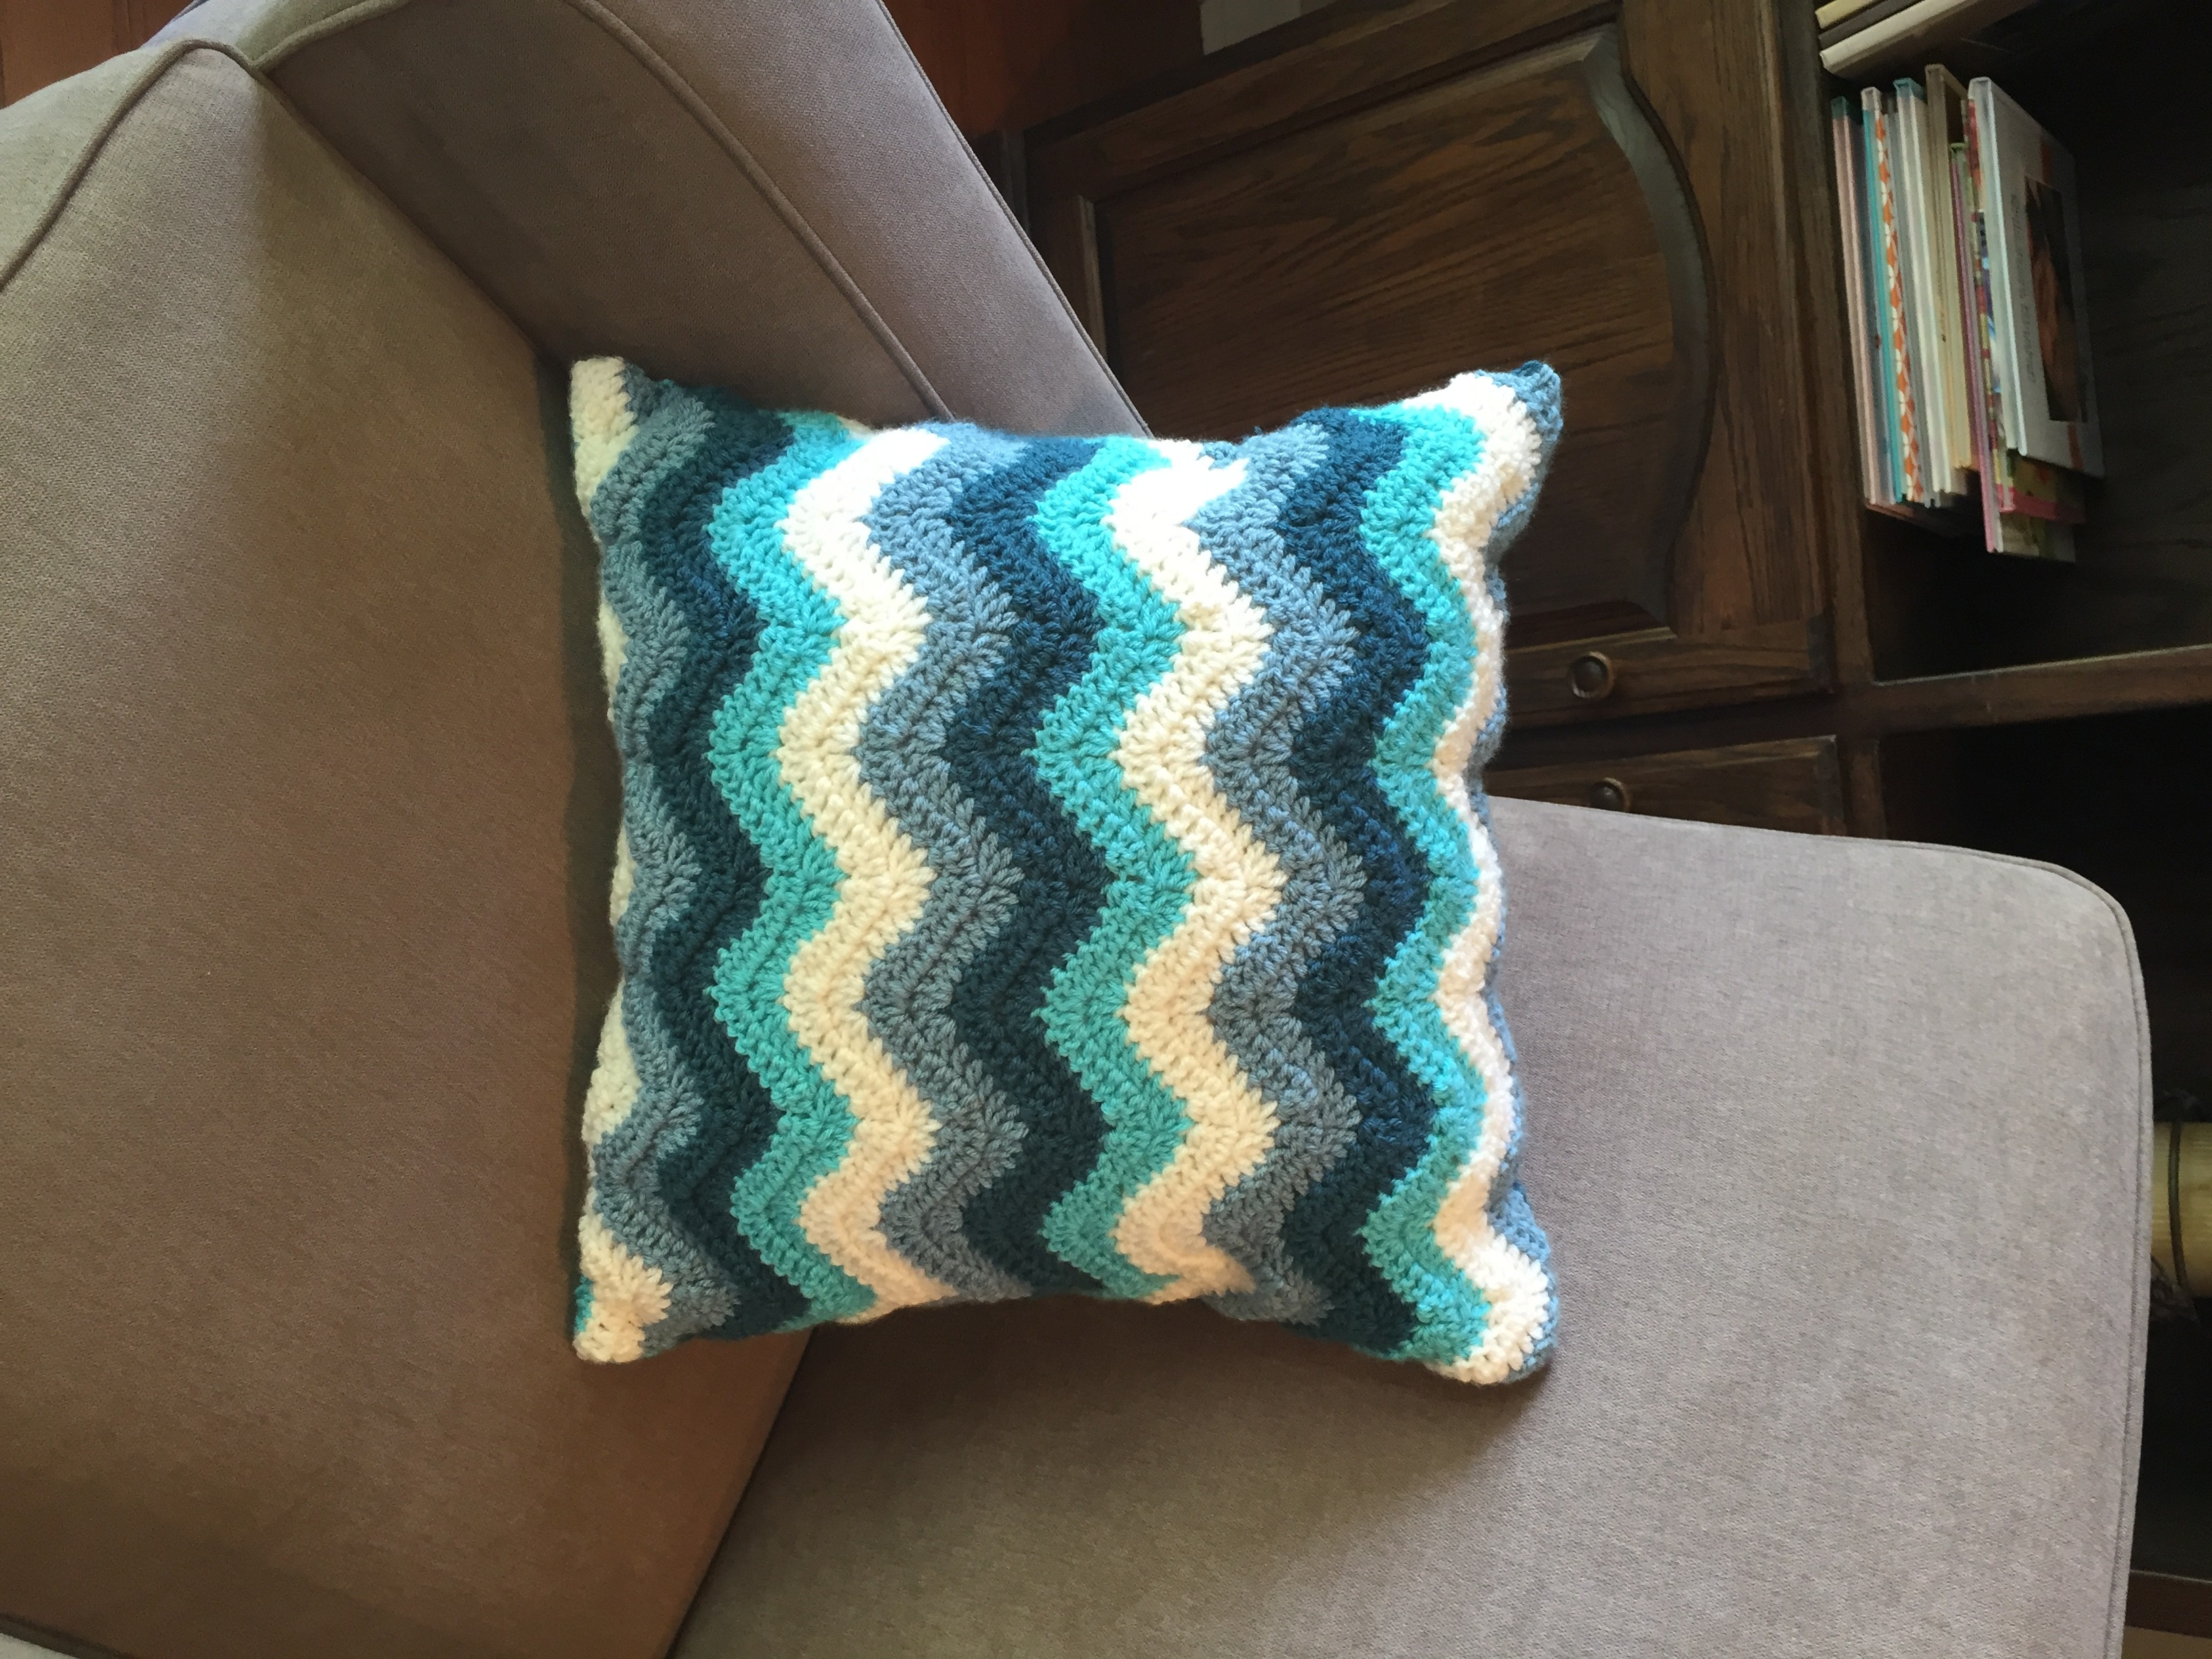 Chevron pillow cover crochet pattern by little monkeys designs in brown chair